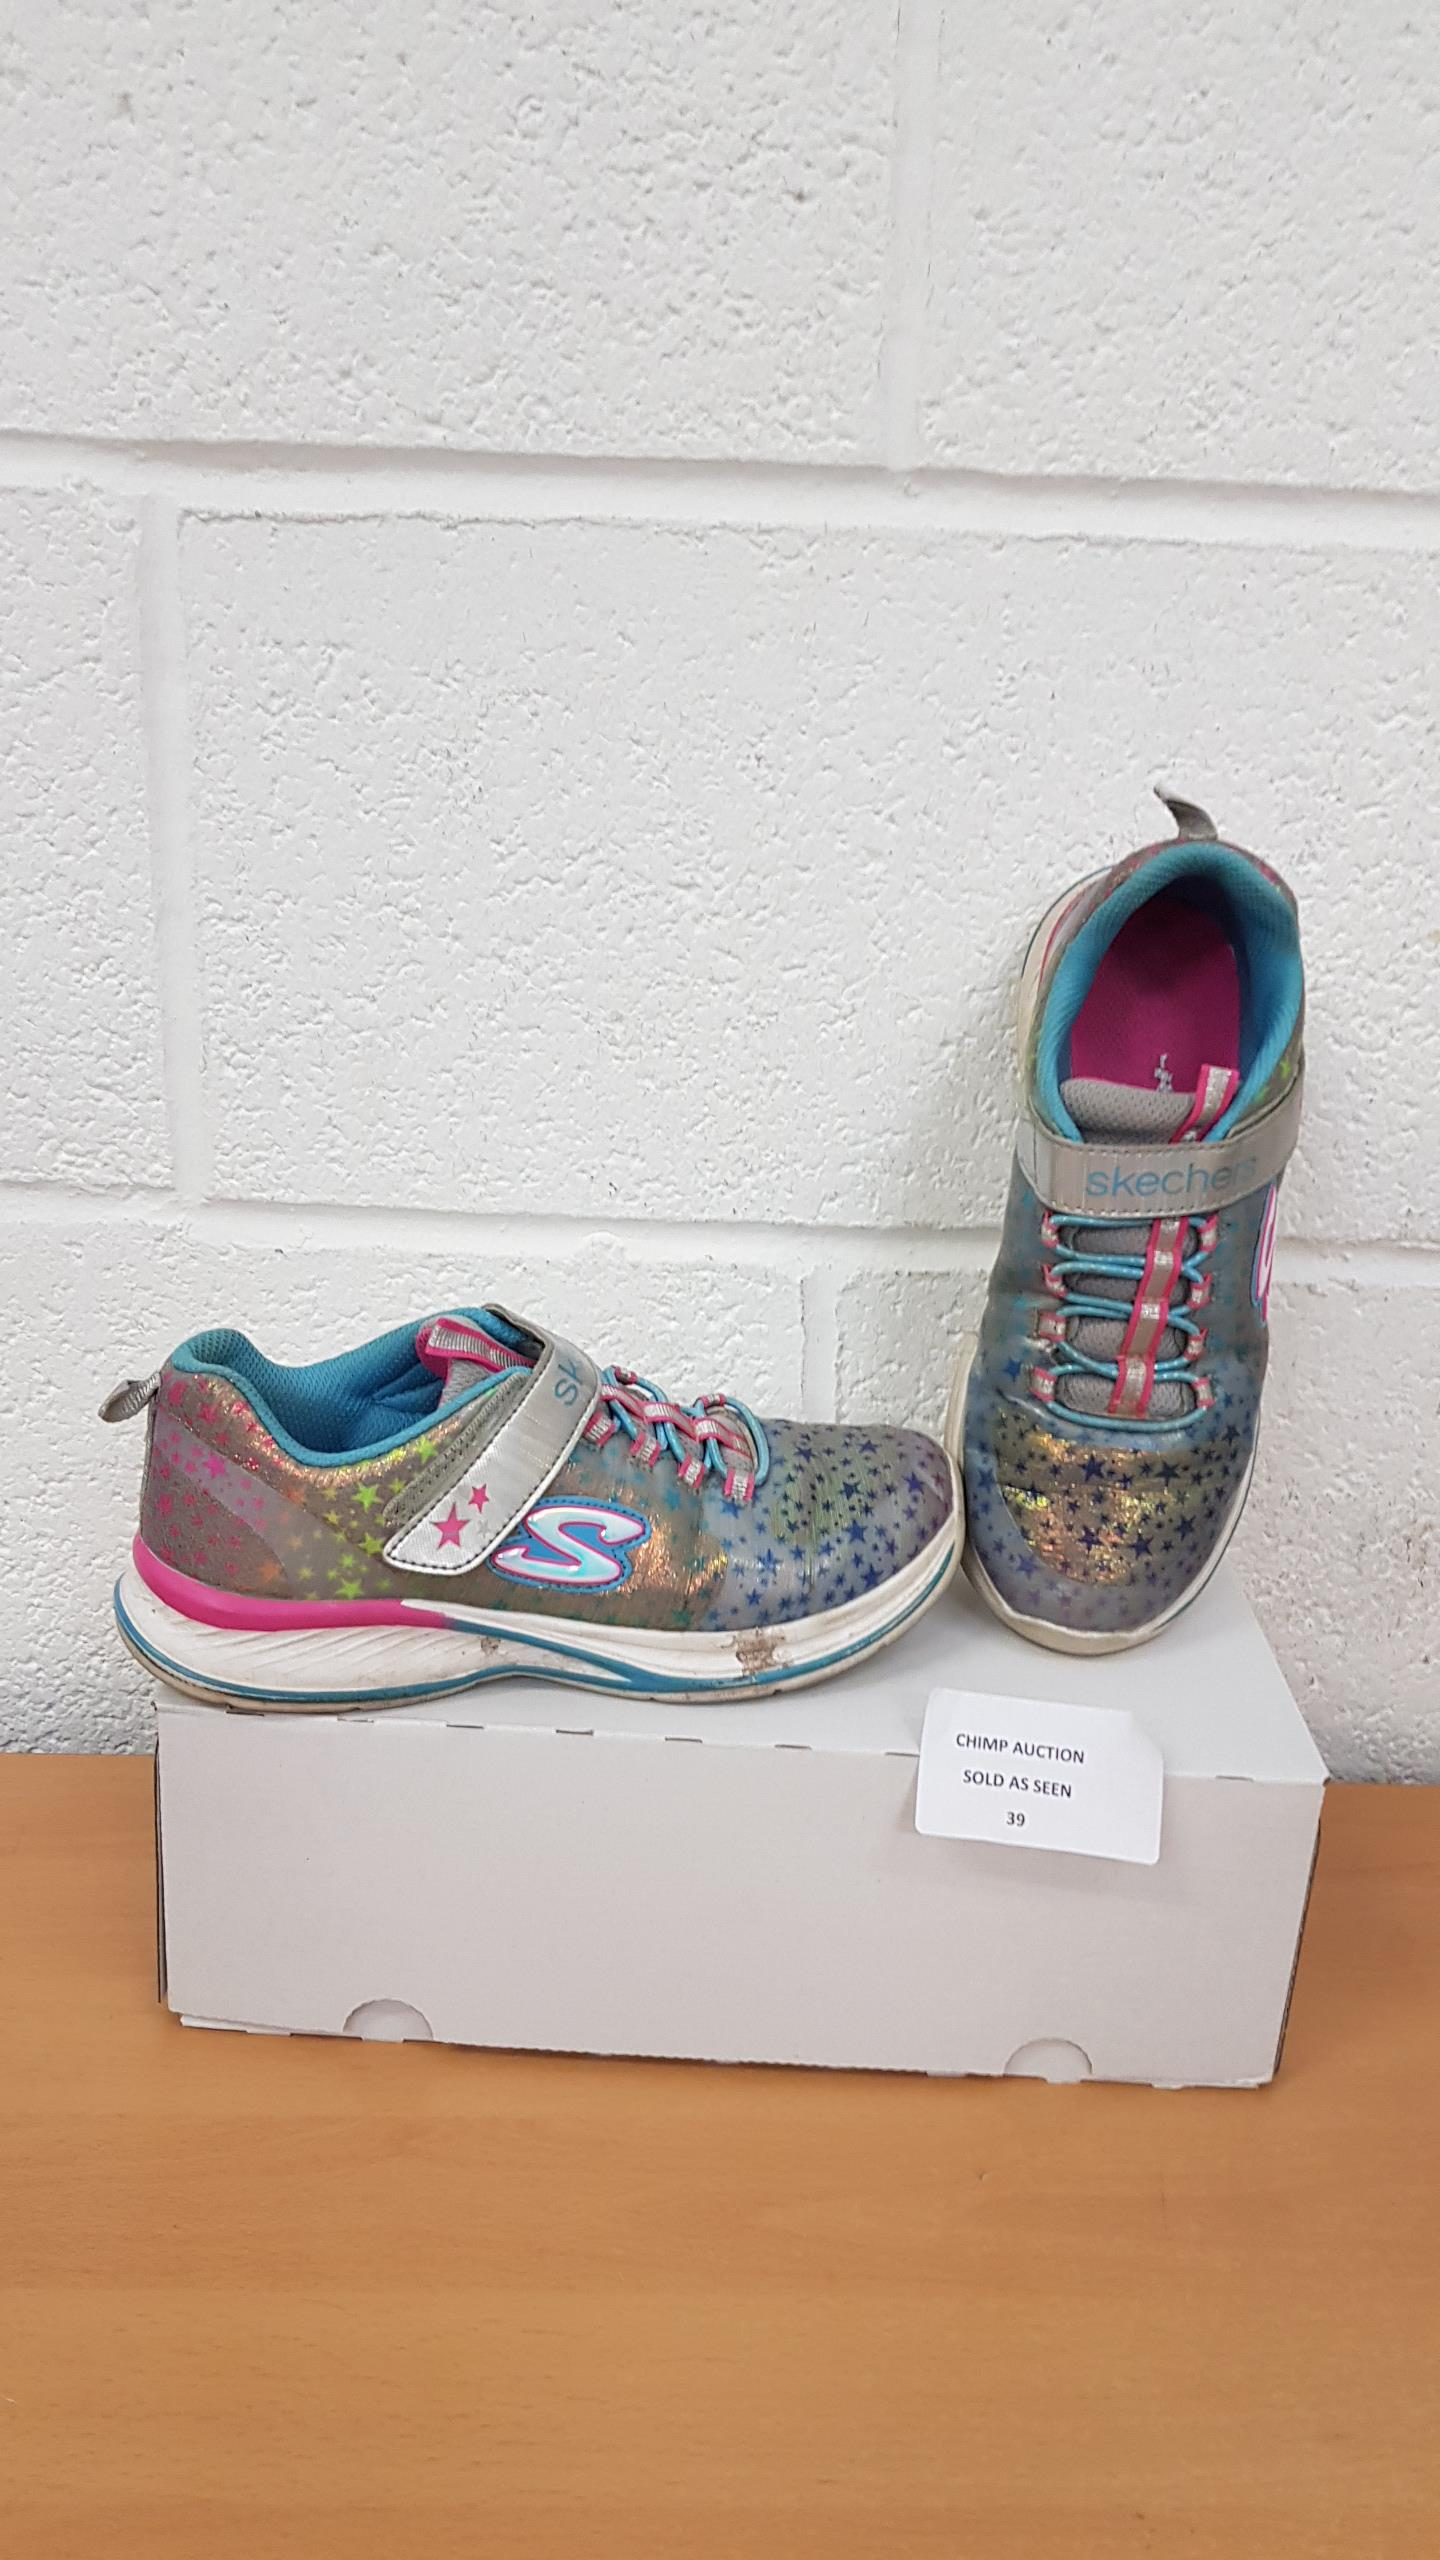 Lot 39 - Sketchers girls trainers UK 2